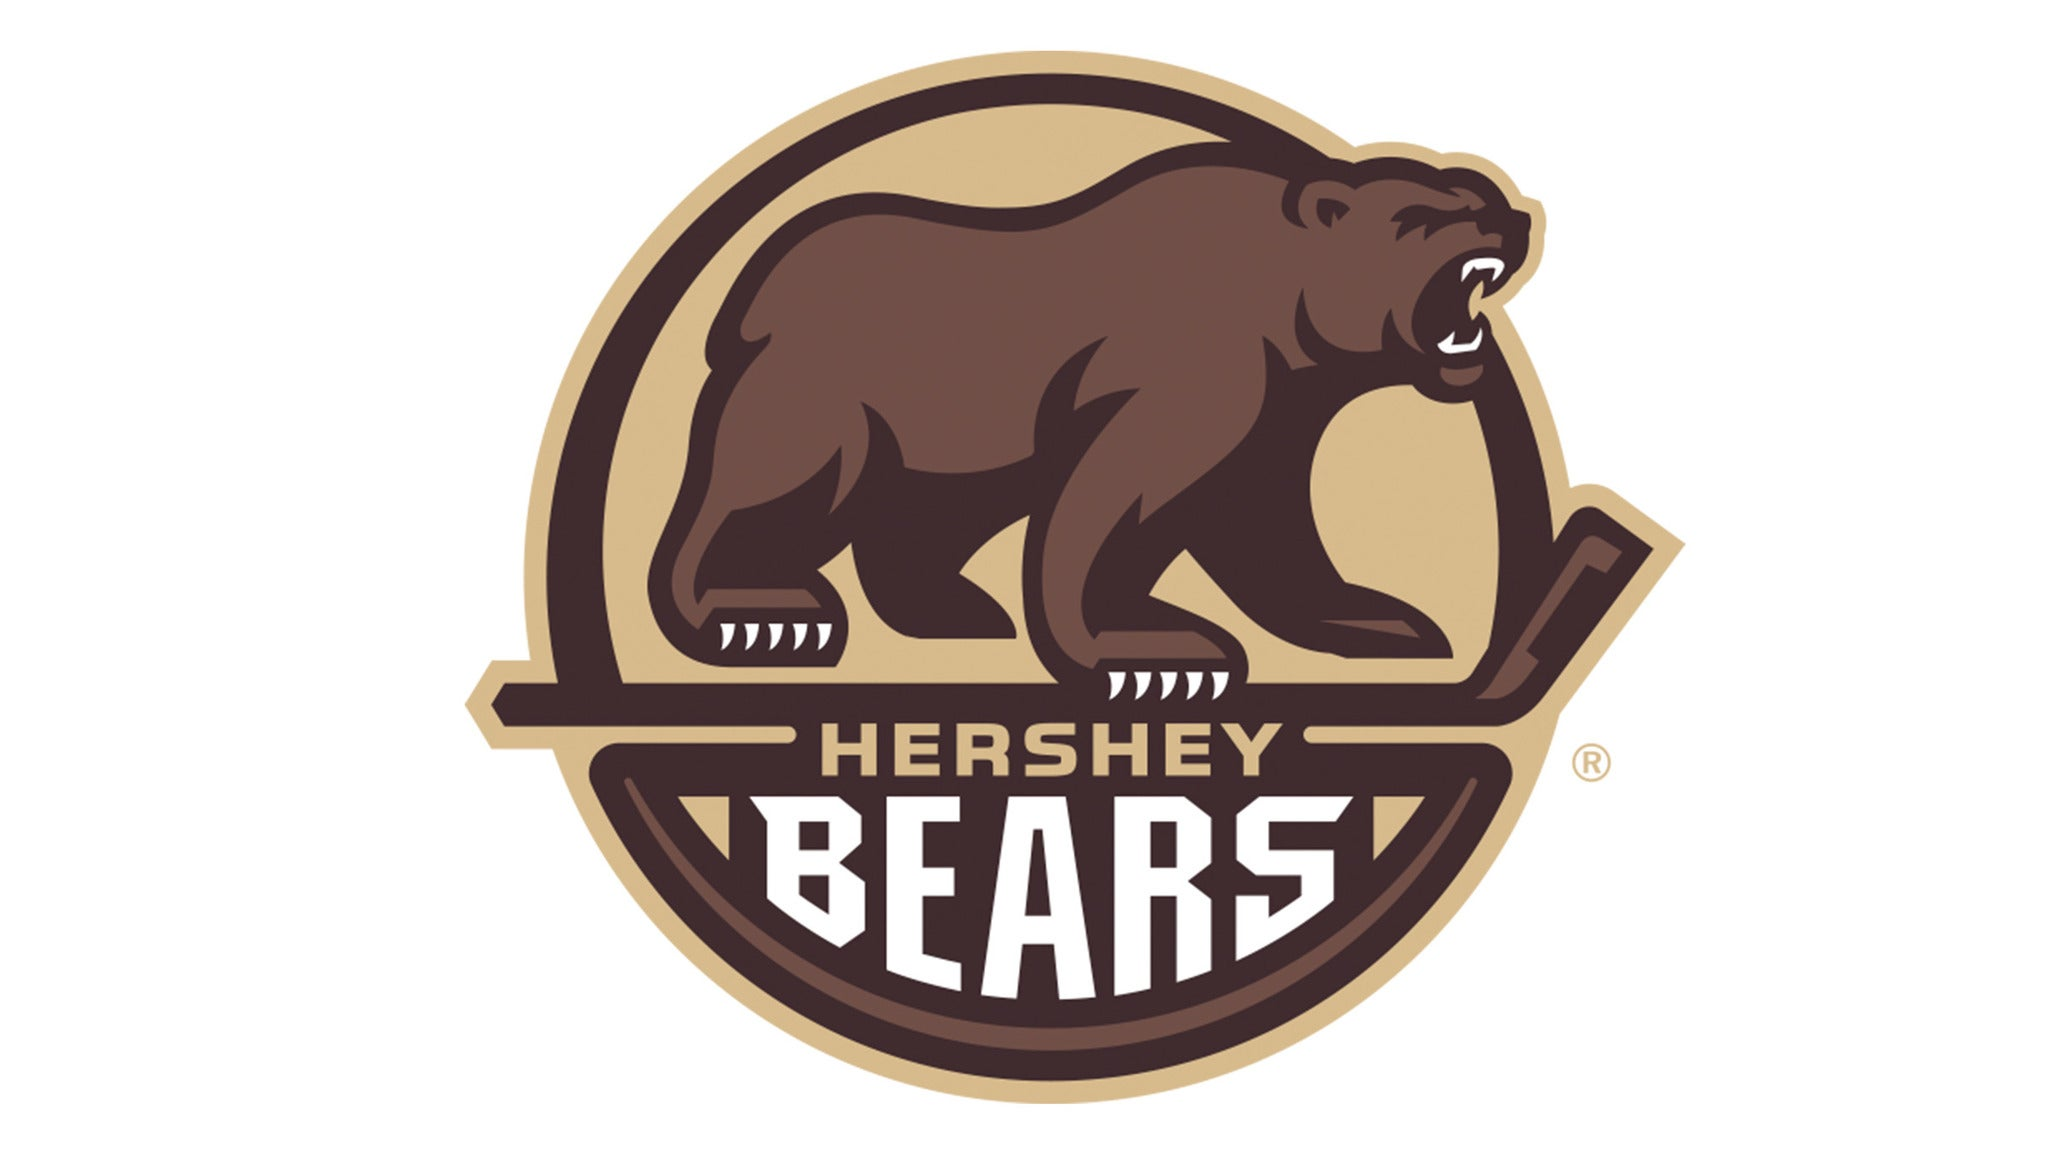 Hershey Bears vs. Wilkes Barre Scranton Penguins